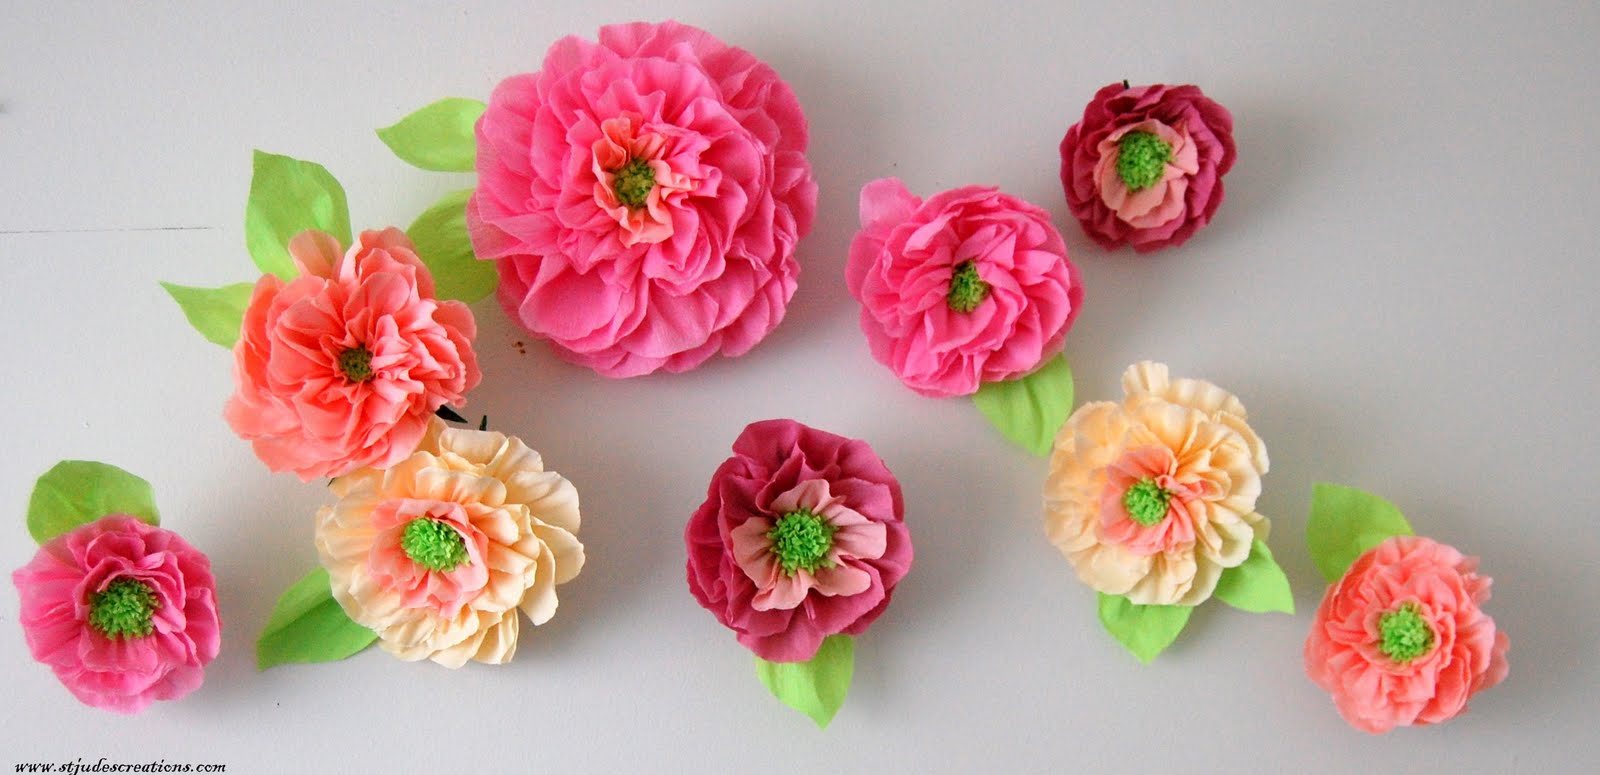 Pottery barn inspired wall paper flowers kids room decor for Flower decoration made of paper